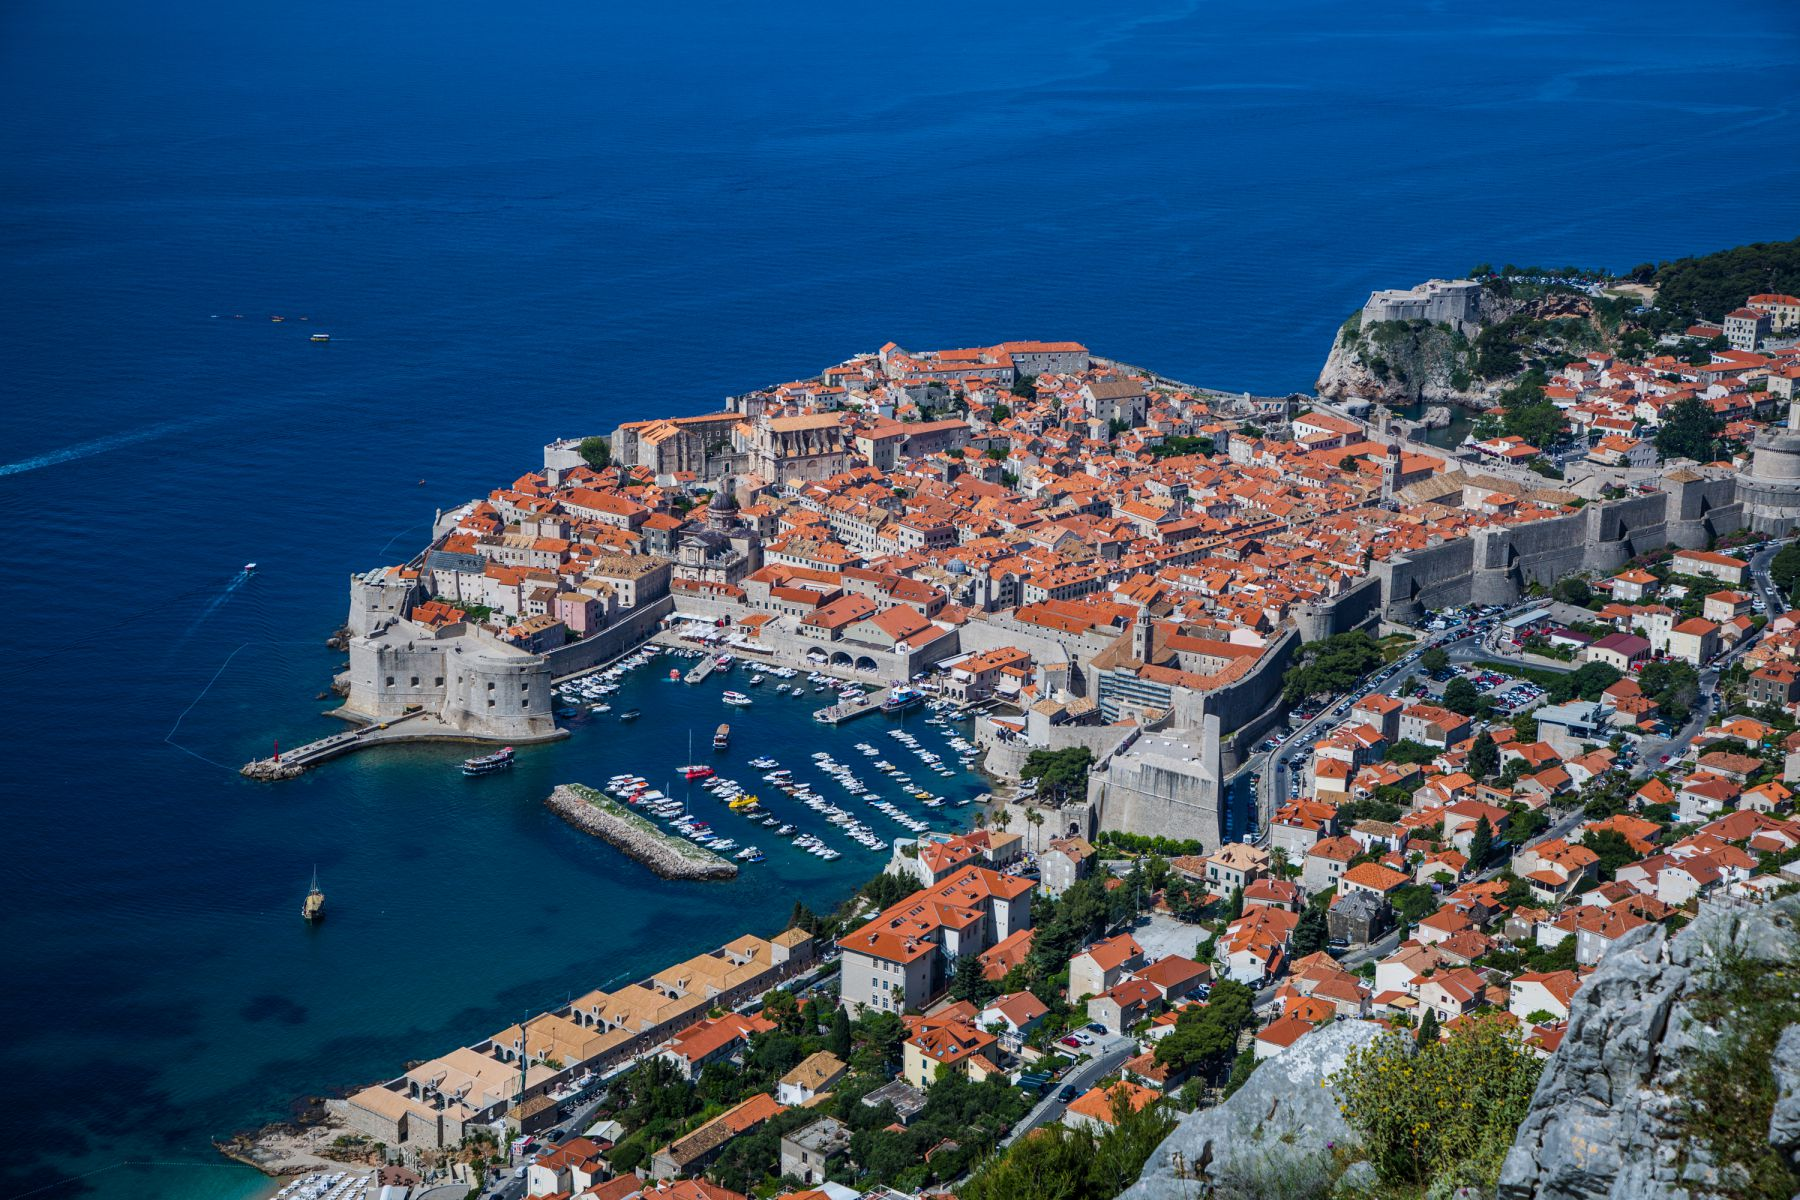 Dubrovnik, Croatia, photo by Ivan Vuković Vuka